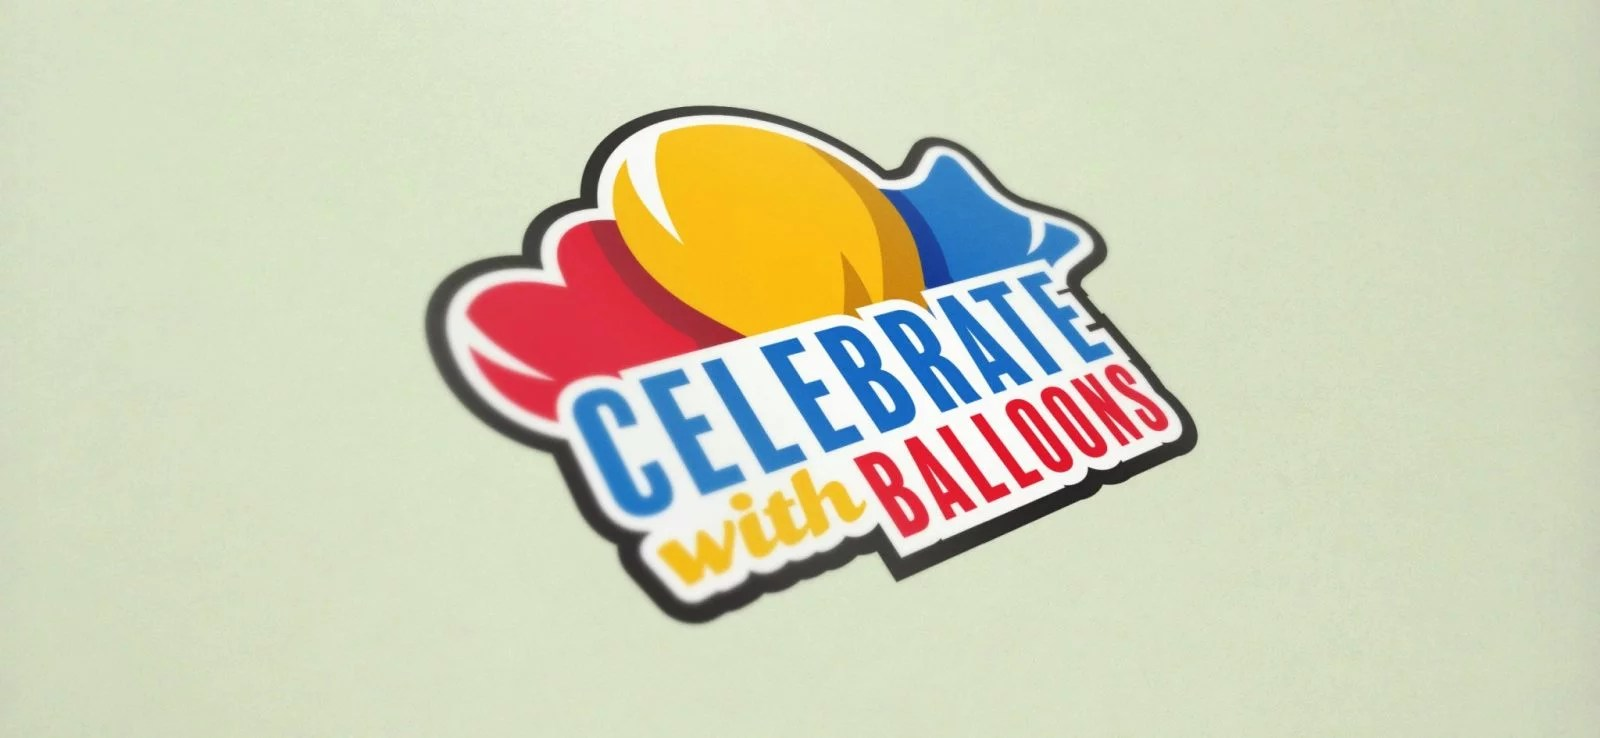 Celebrate With Balloons - Logo Design - Lethbridge Alberta